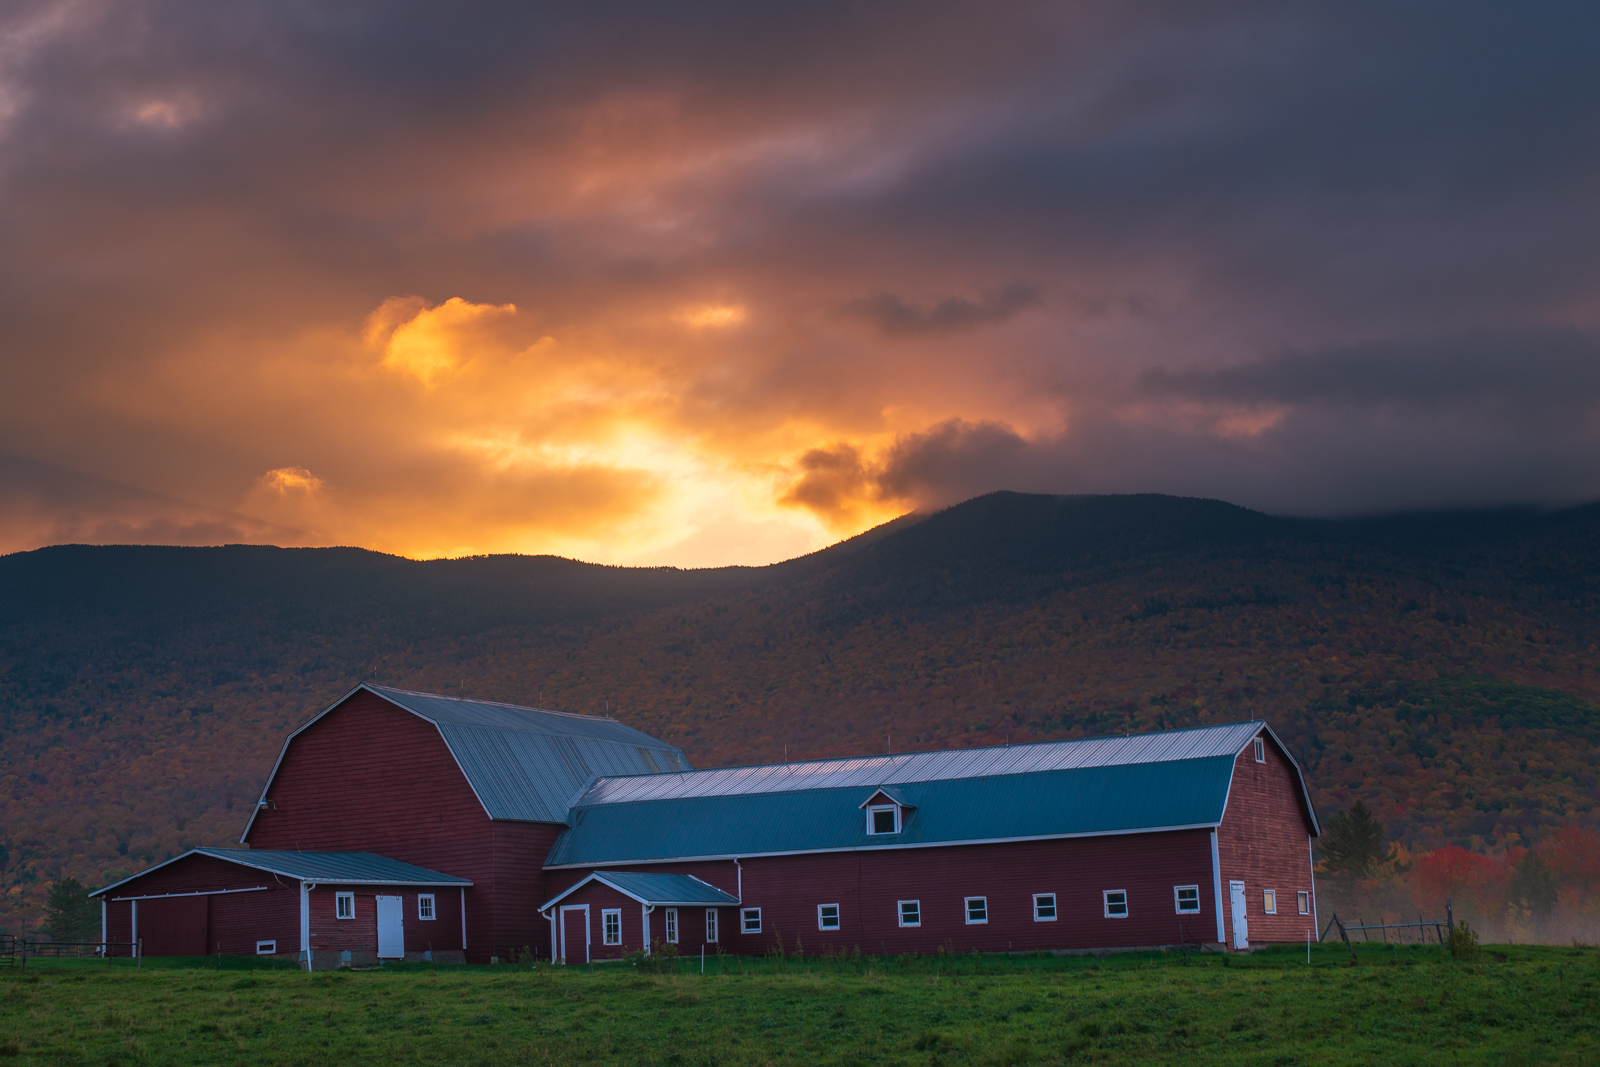 Red barn at sunrise in northern Vermont. Available Print Sizes: 12x18, 16x24, 20x30, 24x36, 30x45, 40x60Limited Edition: 100 -...